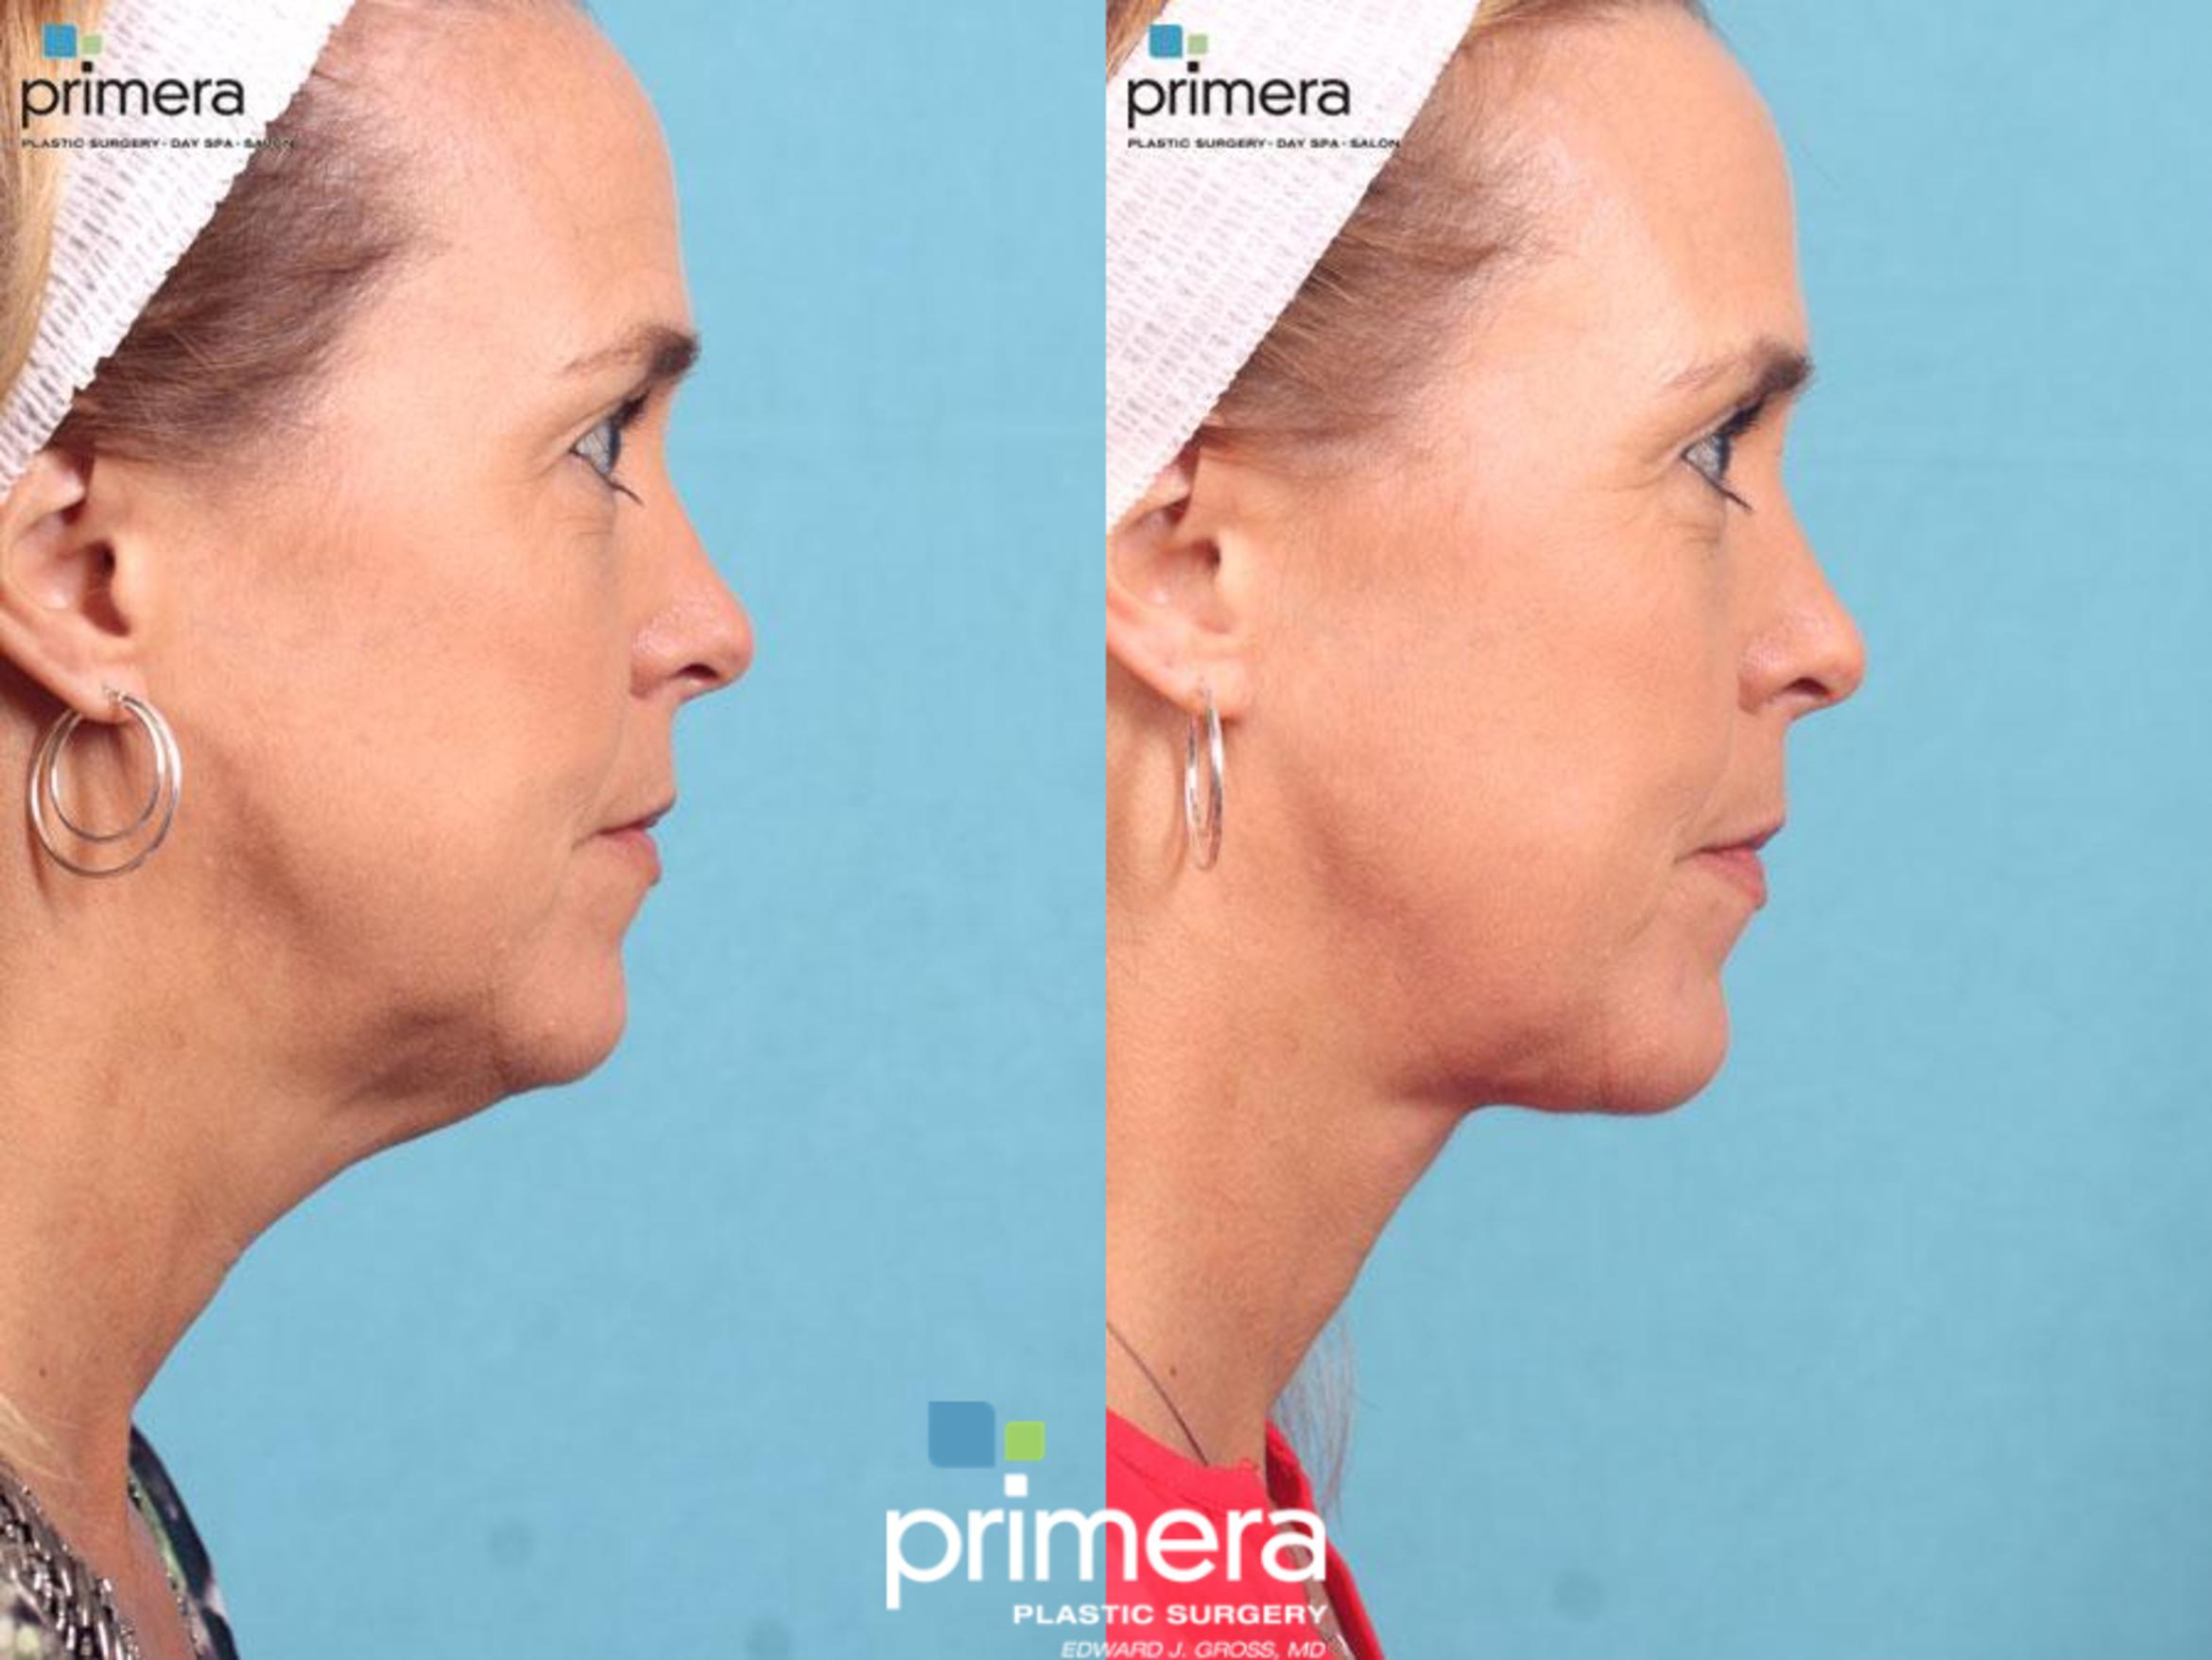 Neck & Face Liposuction Before & After Photo | Orlando, Florida | Primera Plastic Surgery